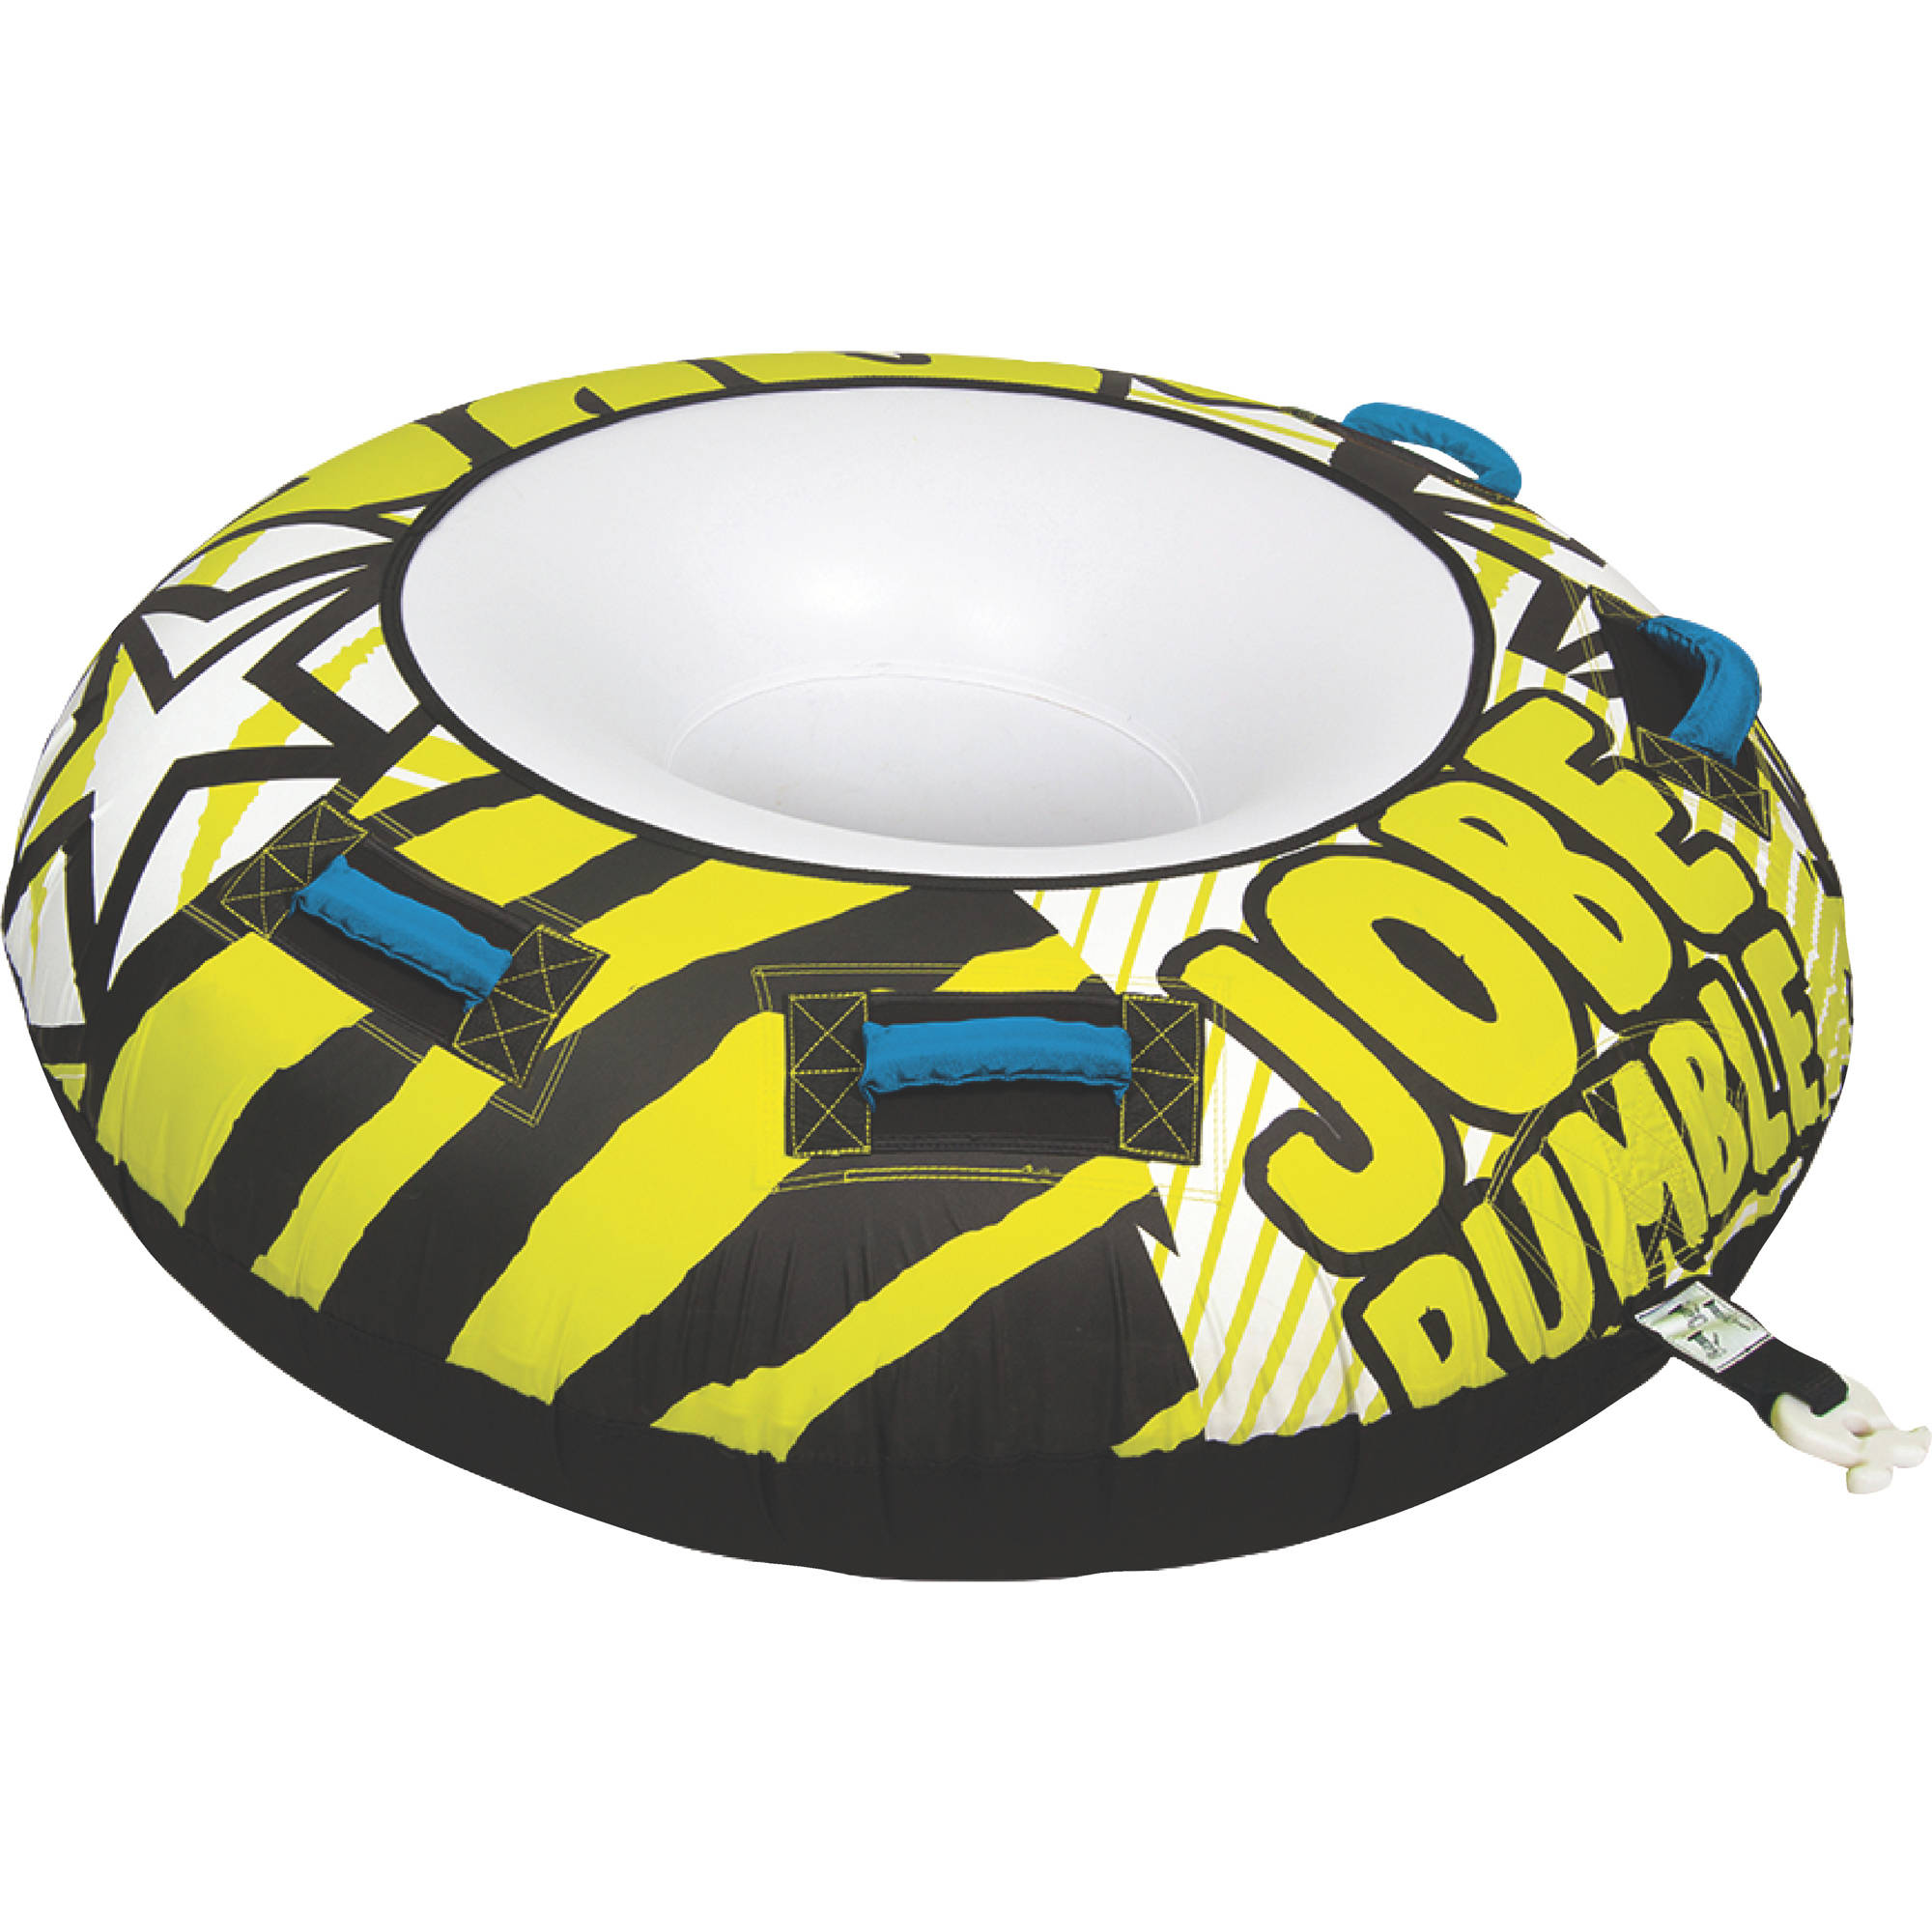 Jobe 230116005 Rumble 1 Person Open Top Inflatable Towable by Jobe Sport International